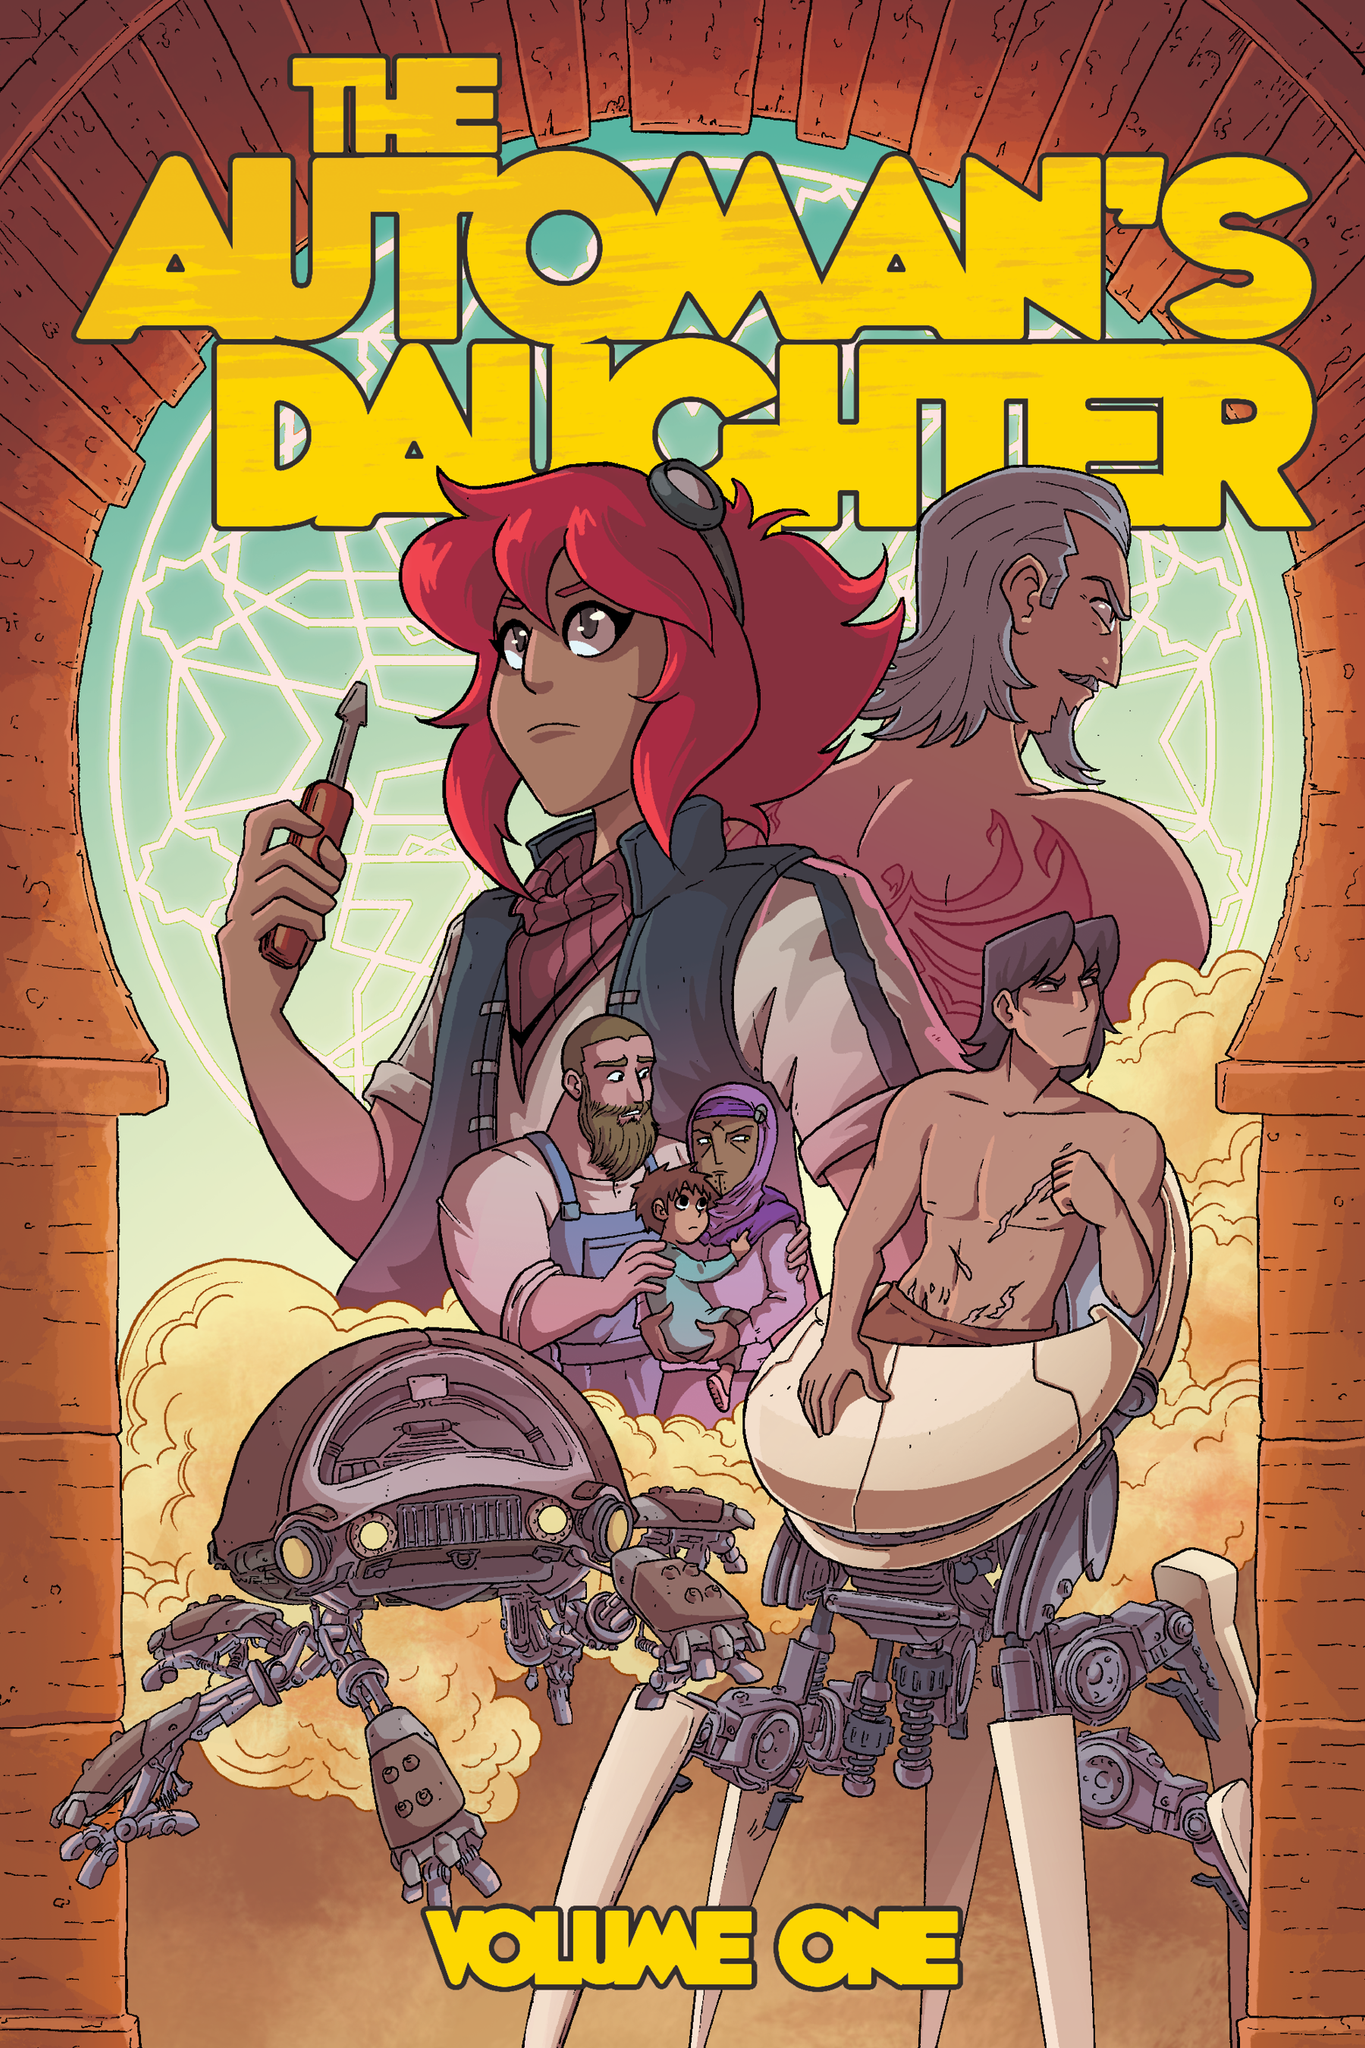 The Automan's Daughter: Volume 1 from The Automan's Daughter - Webcomic Merchandise